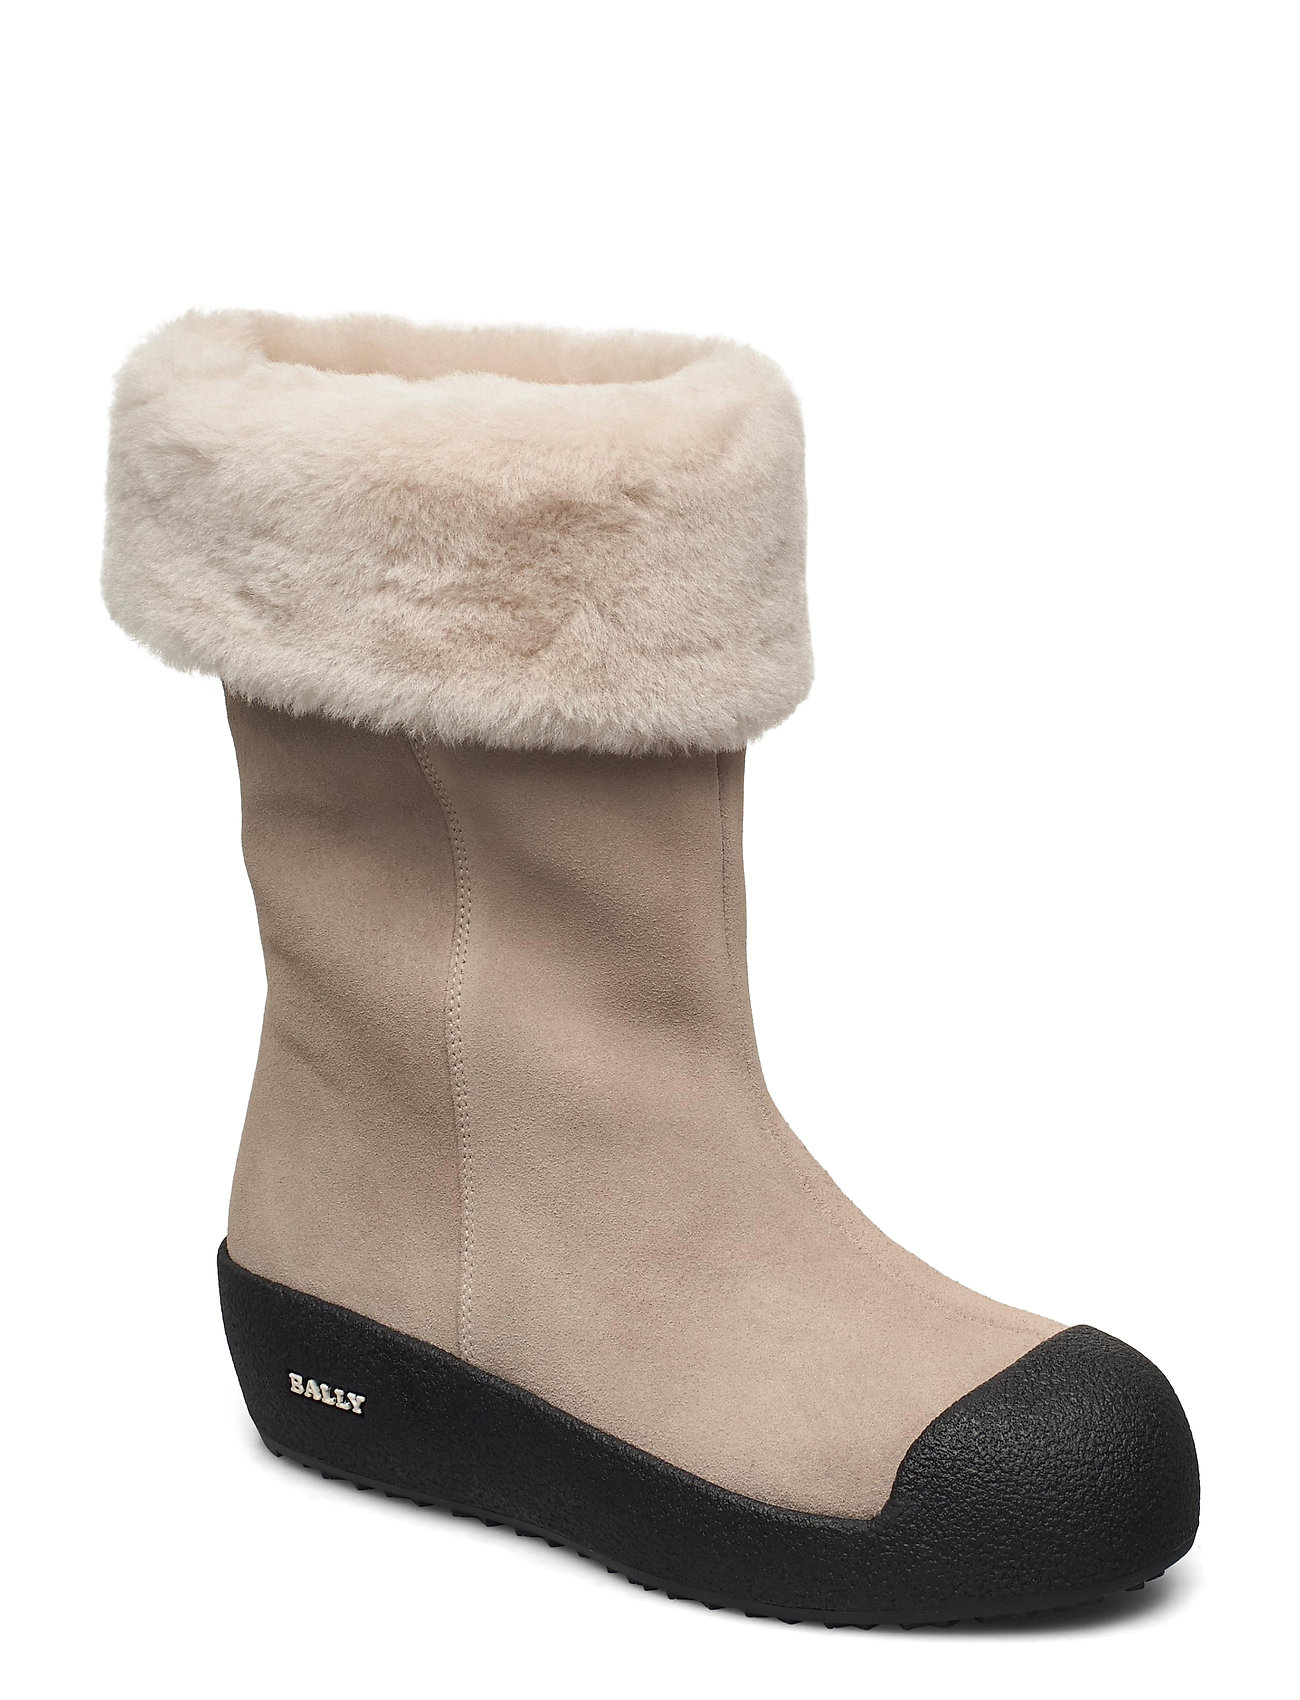 Image of Gavree/24 Shoes Boots Ankle Boots Ankle Boot - Flat Beige Bally (3464914095)